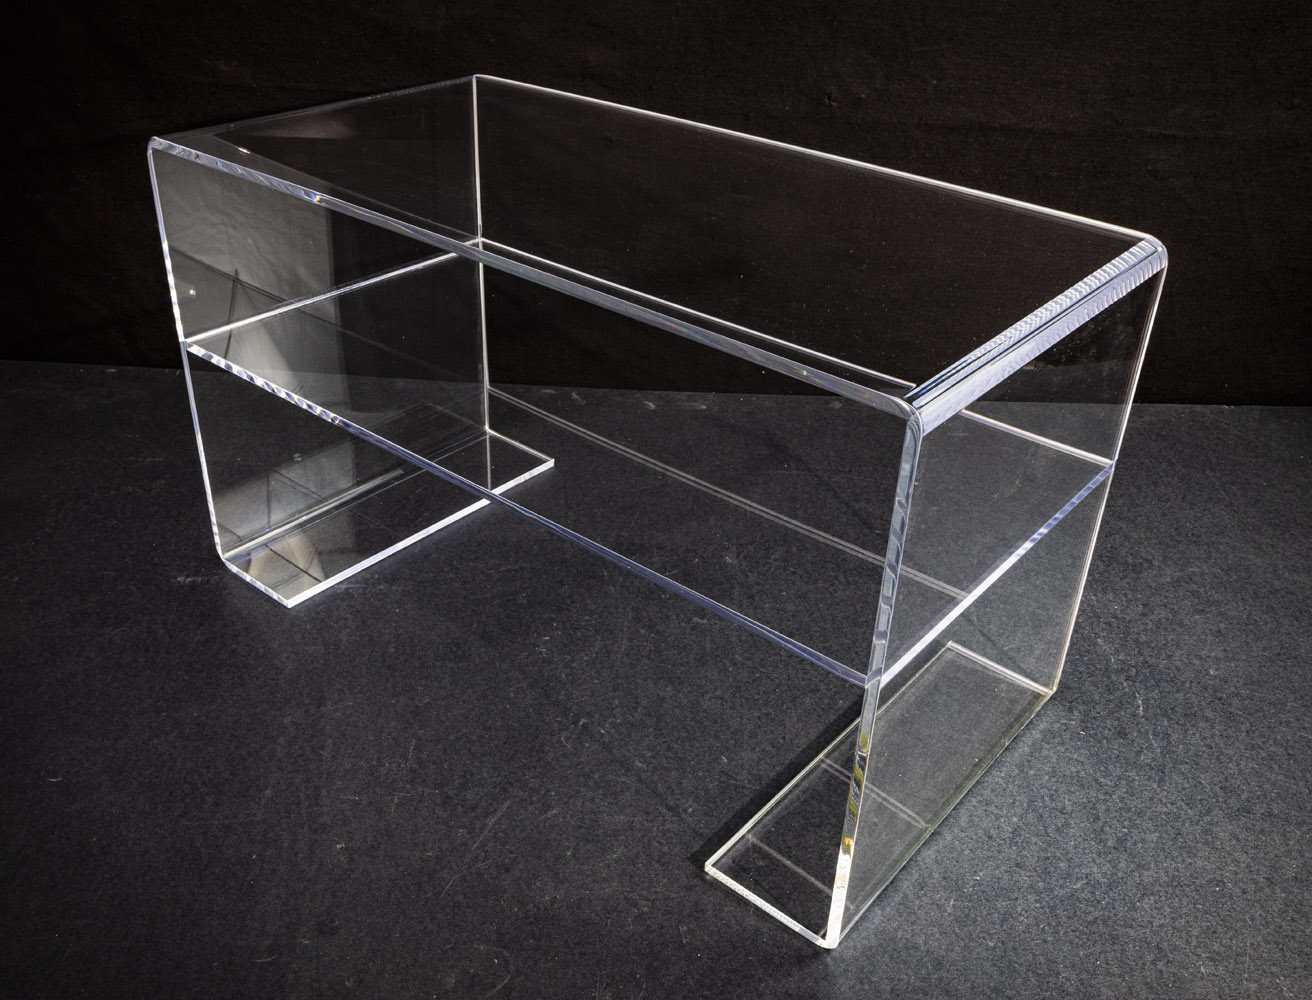 TV_Stand_20190520_0010